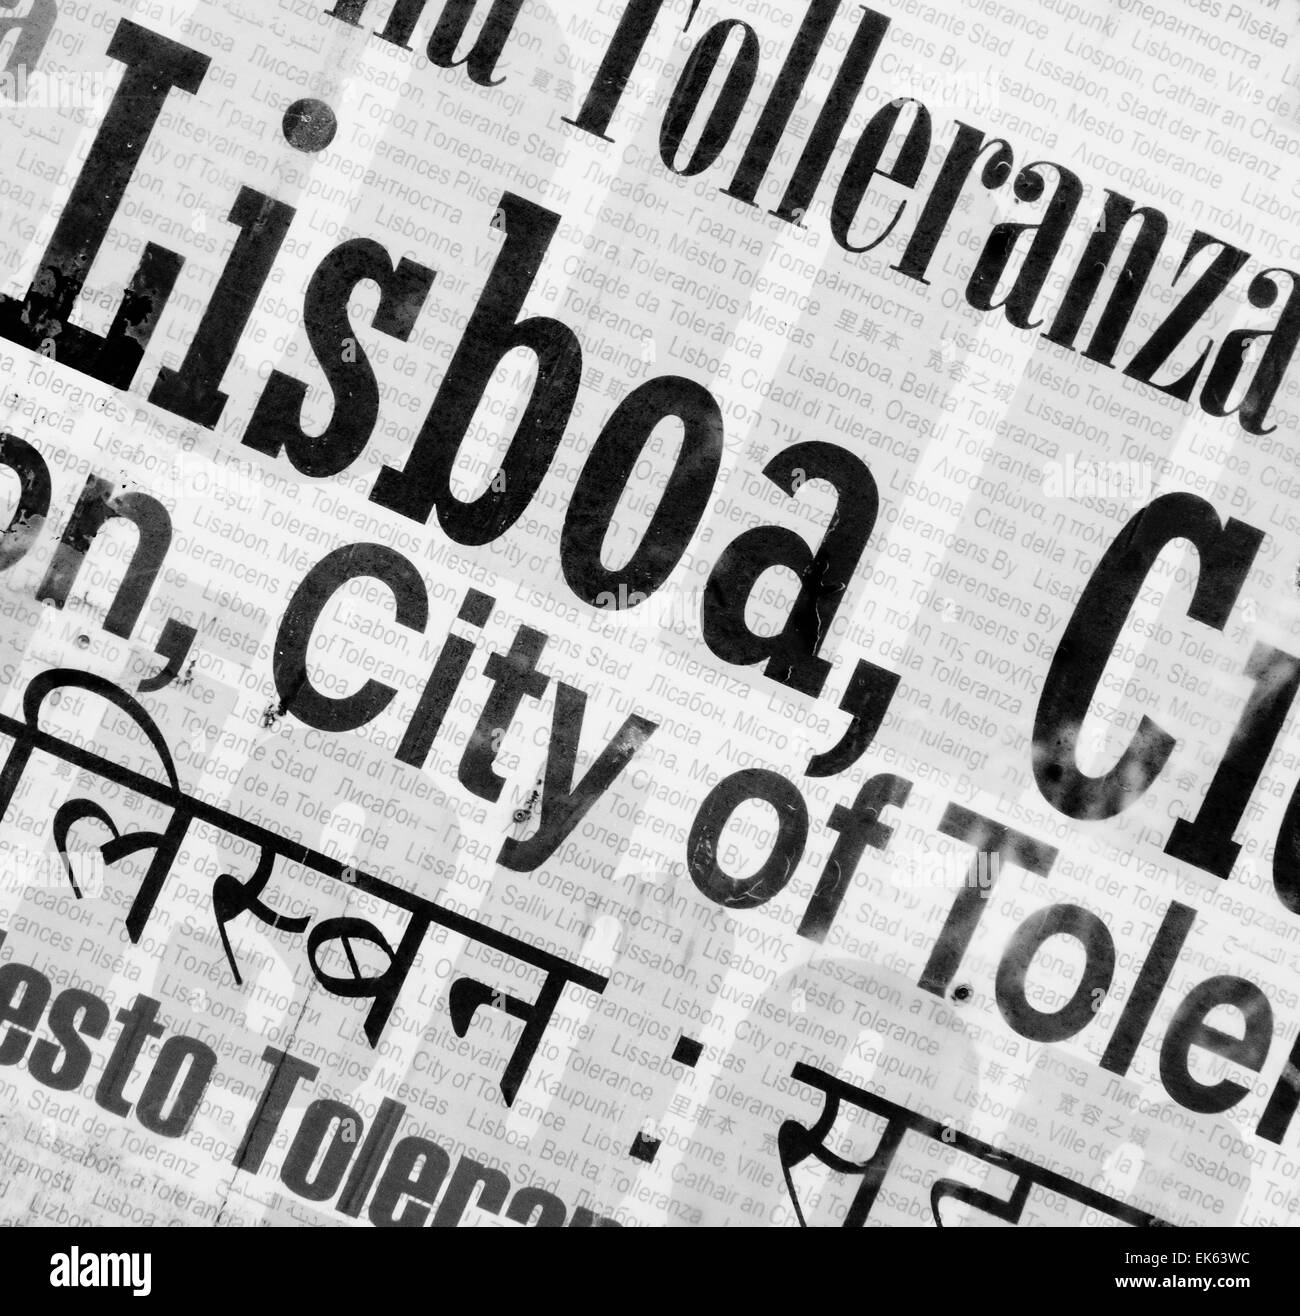 Portugal, Lisbon, mural dedicated to the tolerance of the city on a wall downtown Stock Photo